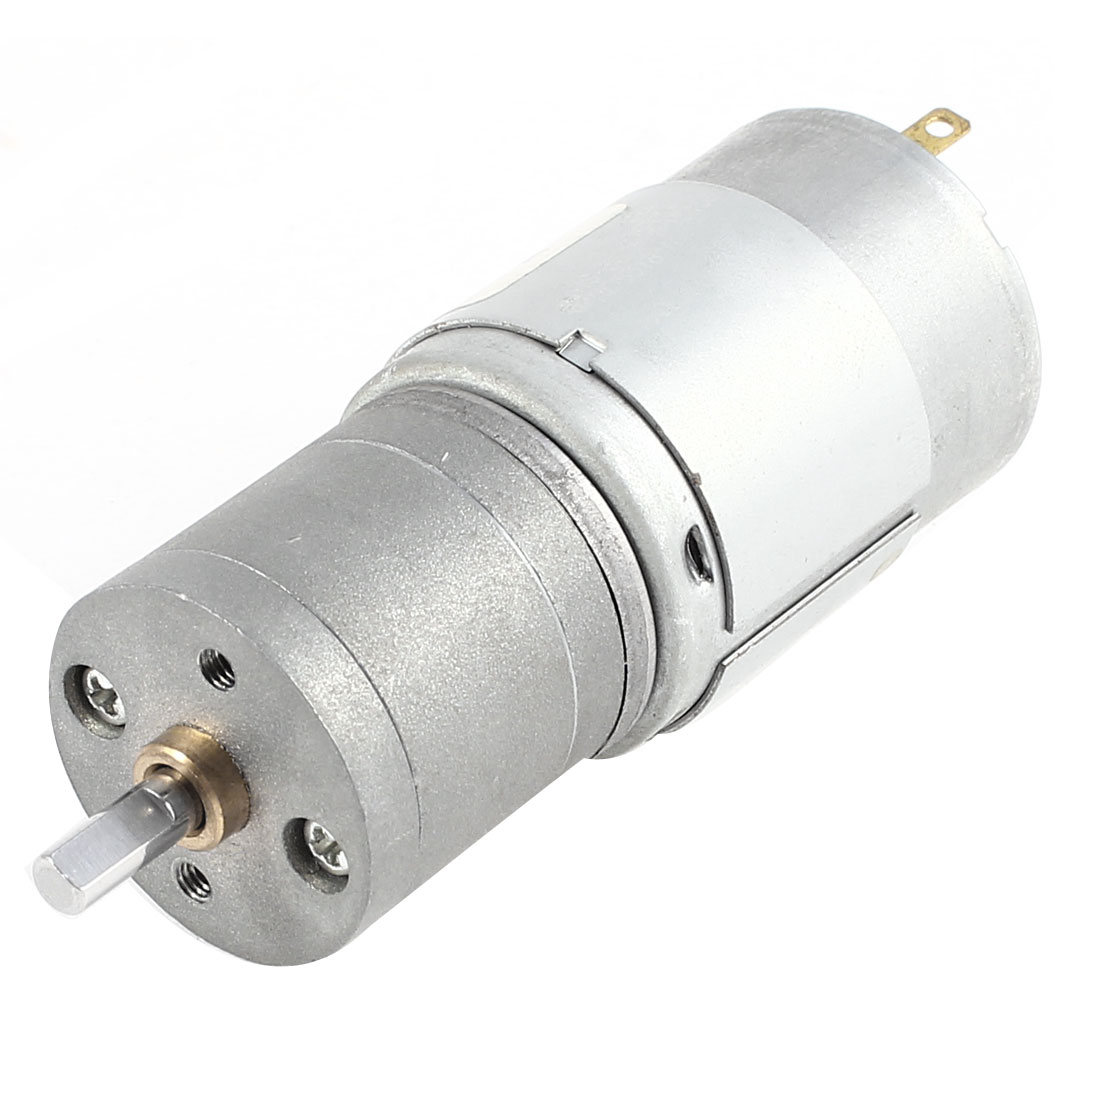 JGA25-385 DC 24V 76RPM 4mm Diameter Shaft Electric Geared Box Speed Reduce Motor